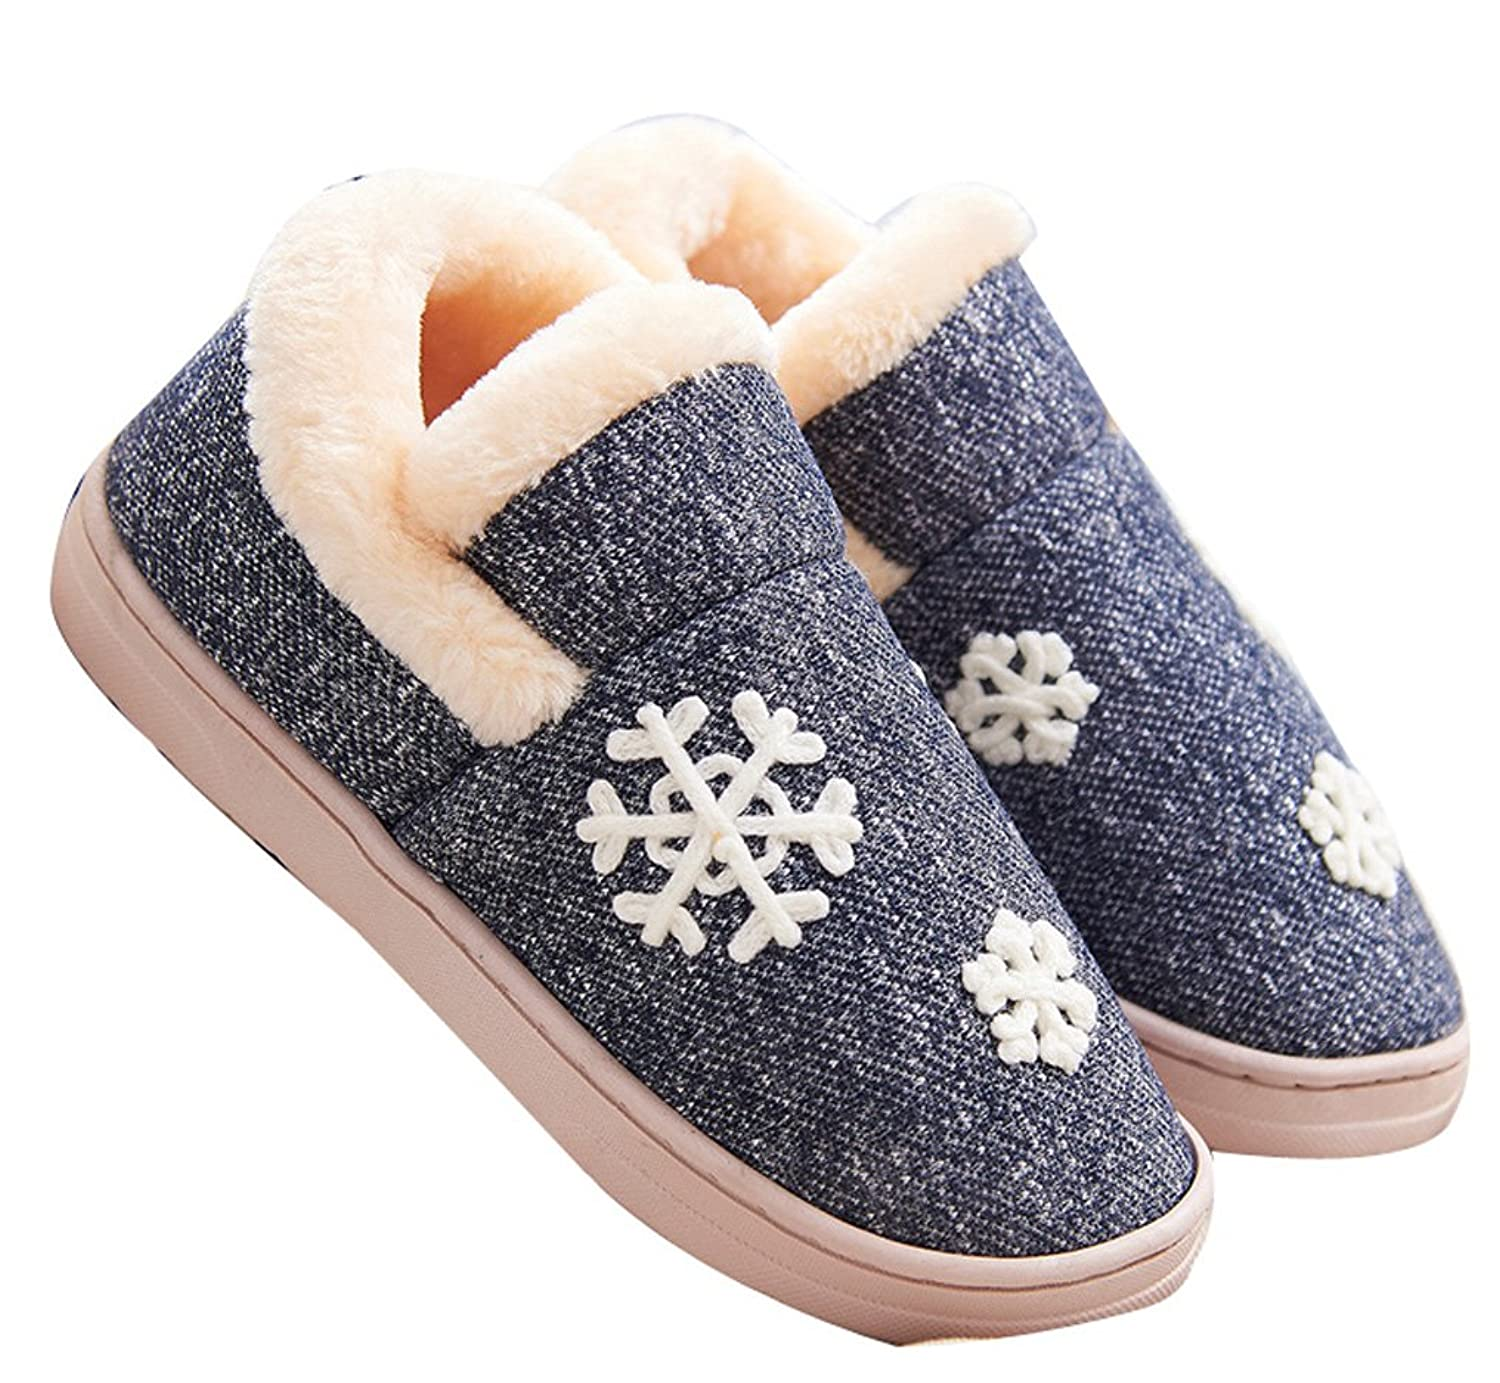 FreLO Women's Dark Blue Cotton Snowflakes Warm Womens Slippers Ladies Slippers